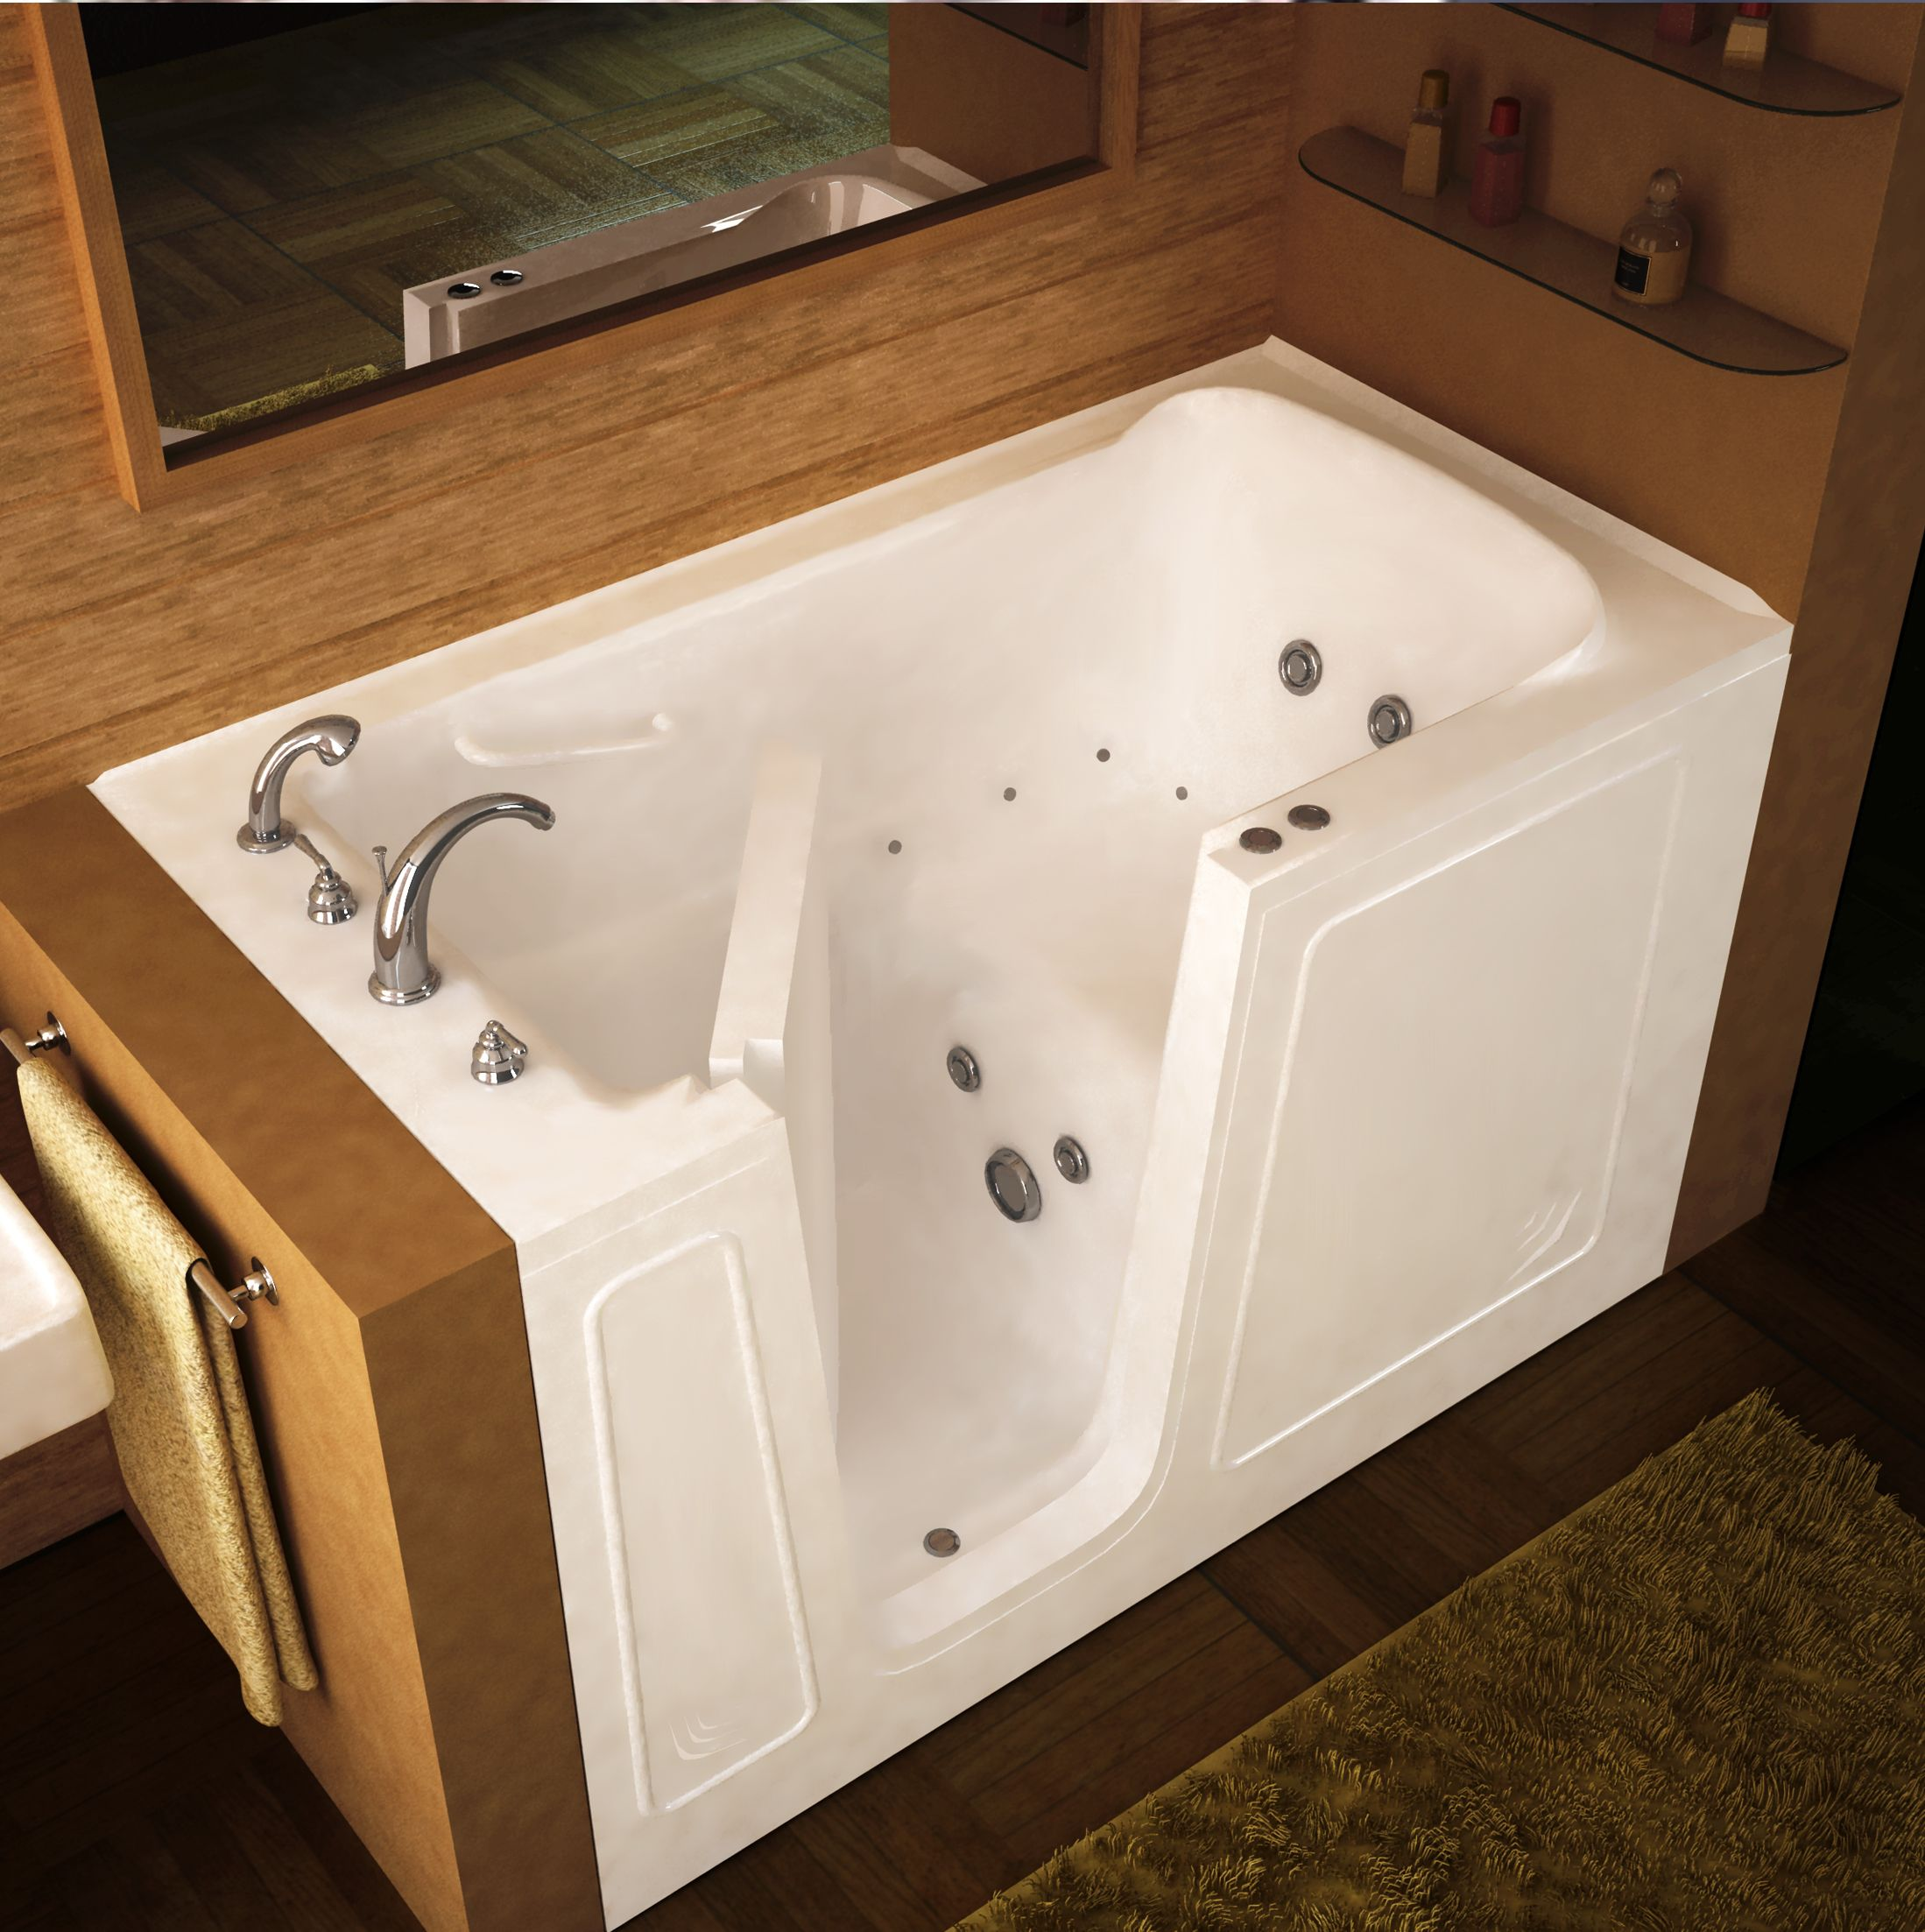 Stunning Bathtubs Prices Ideas - The Best Bathroom Ideas - lapoup.com